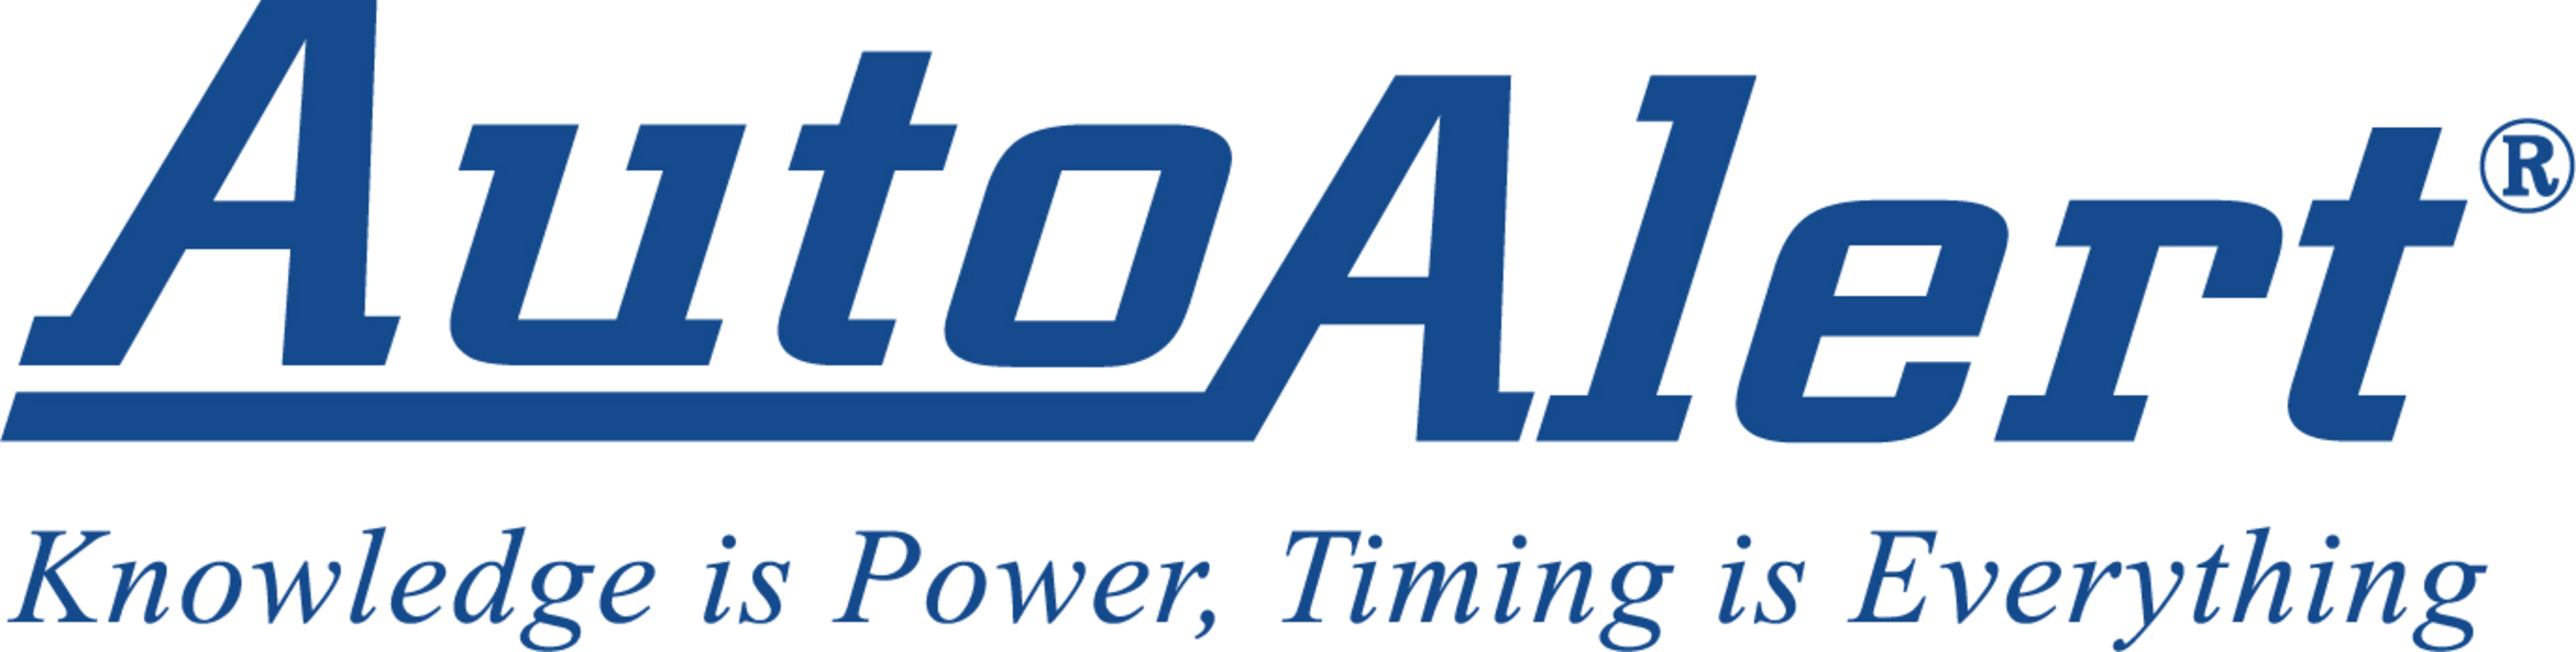 AutoAlert, LLC. is North America's premier data mining, lead generation and sales opportunity provider for ...